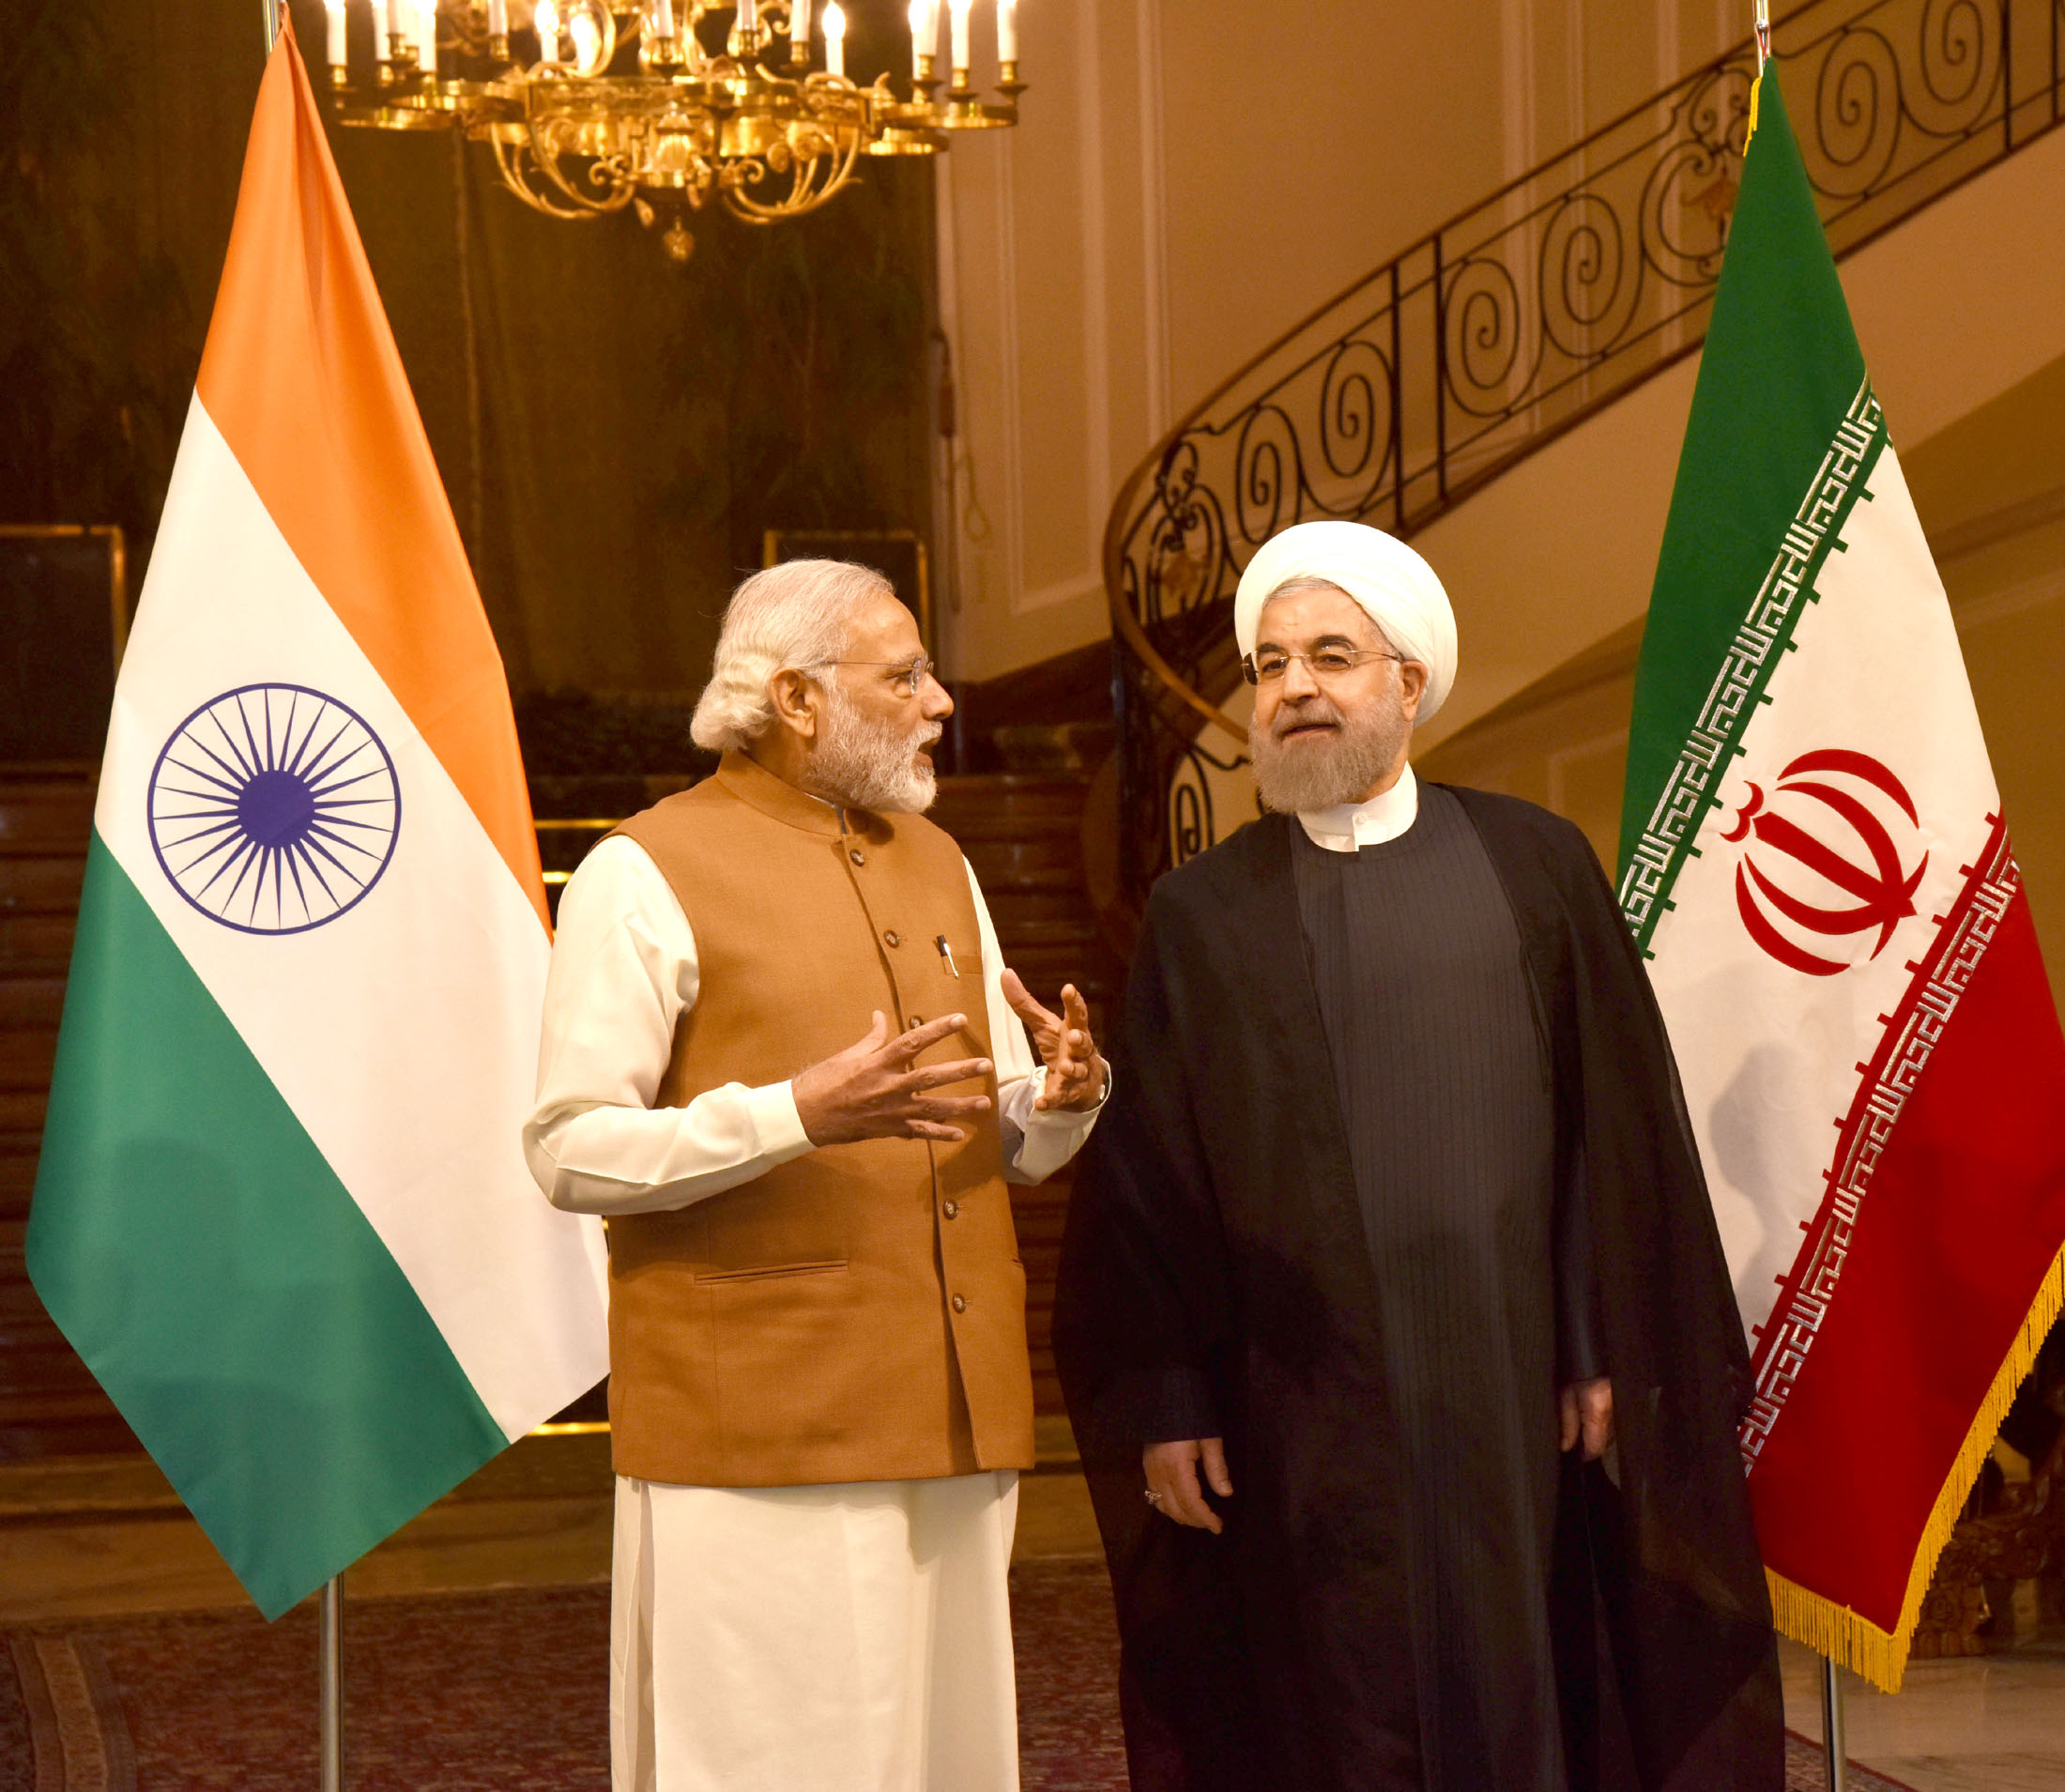 https://upload.wikimedia.org/wikipedia/commons/f/fc/Prime_Minister_Narendra_Modi_with_President_of_Iran,_Hassan_Rouhani.jpg